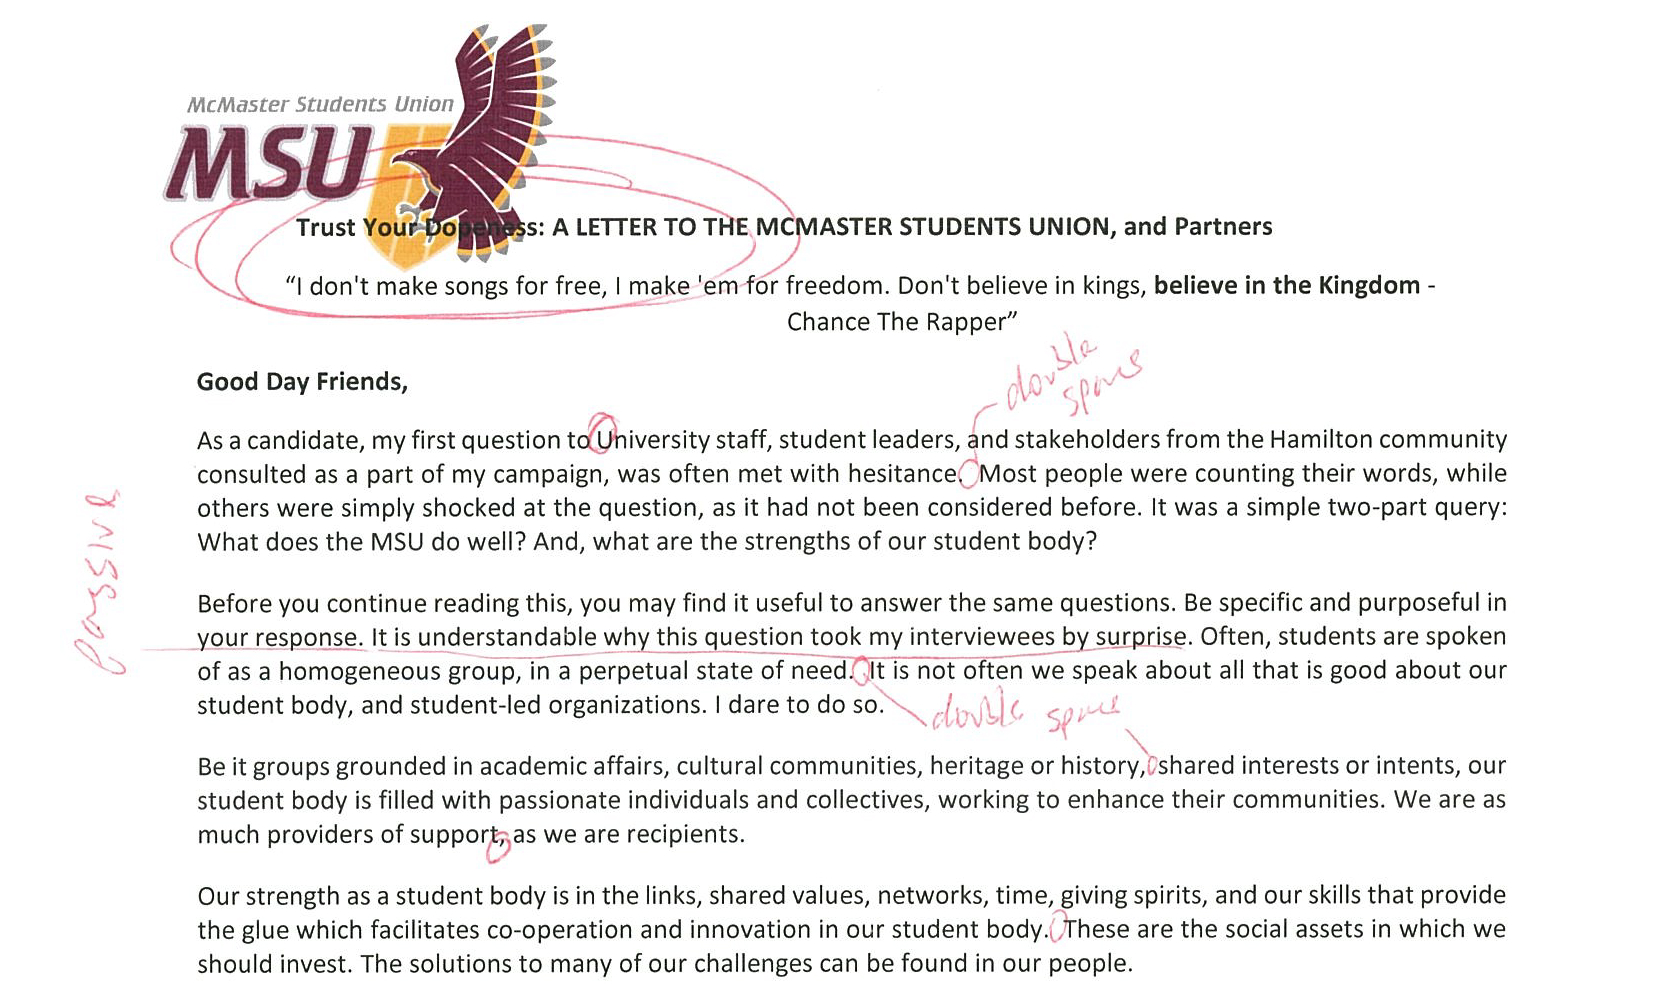 The ying and yang of style and substance The open letter from the President of the MSU is redeemed by the yearlong plan